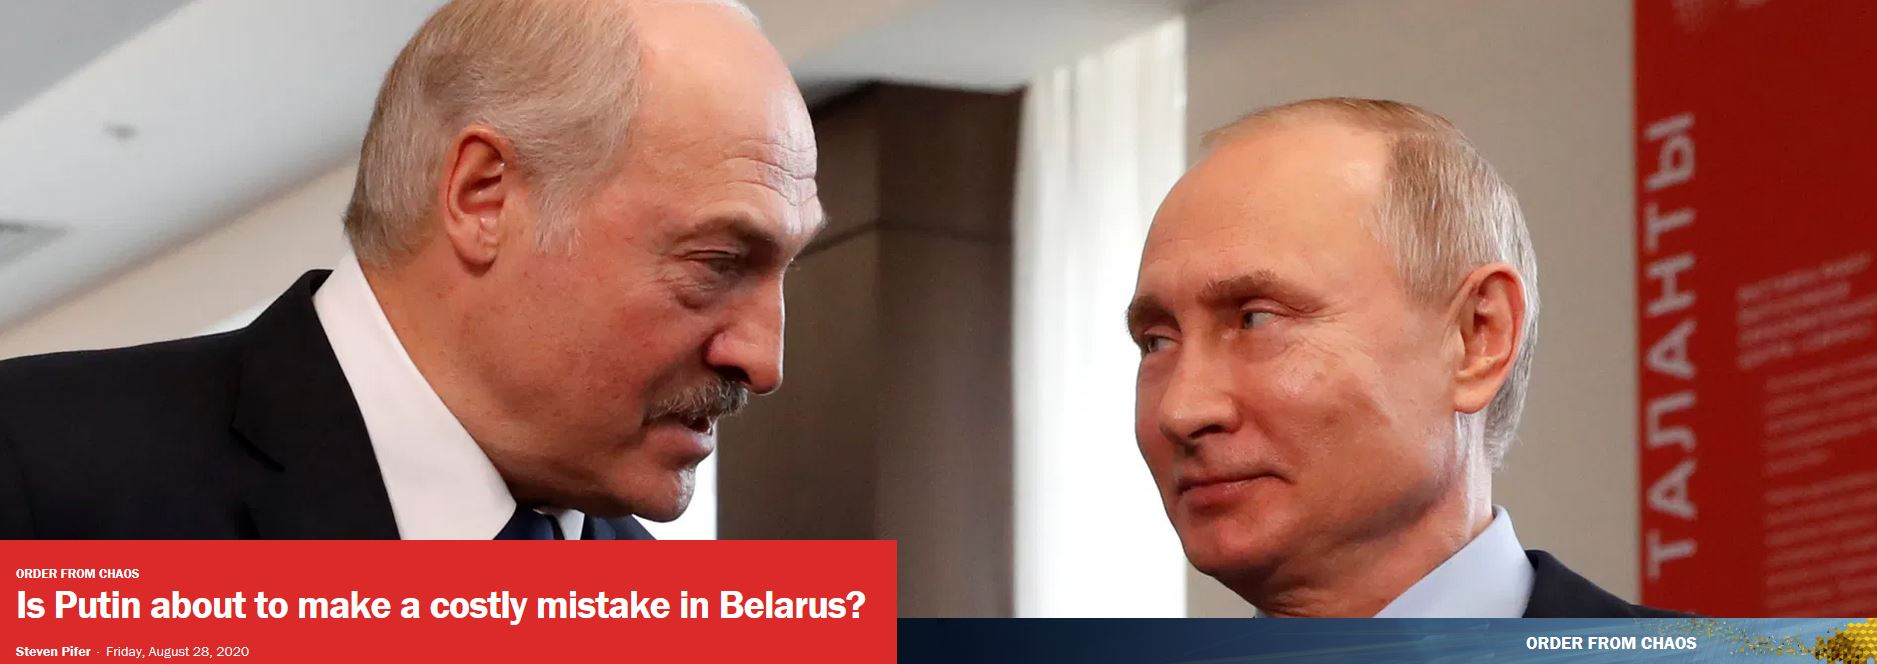 Is Putin about to make a costly mistake in Belarus?